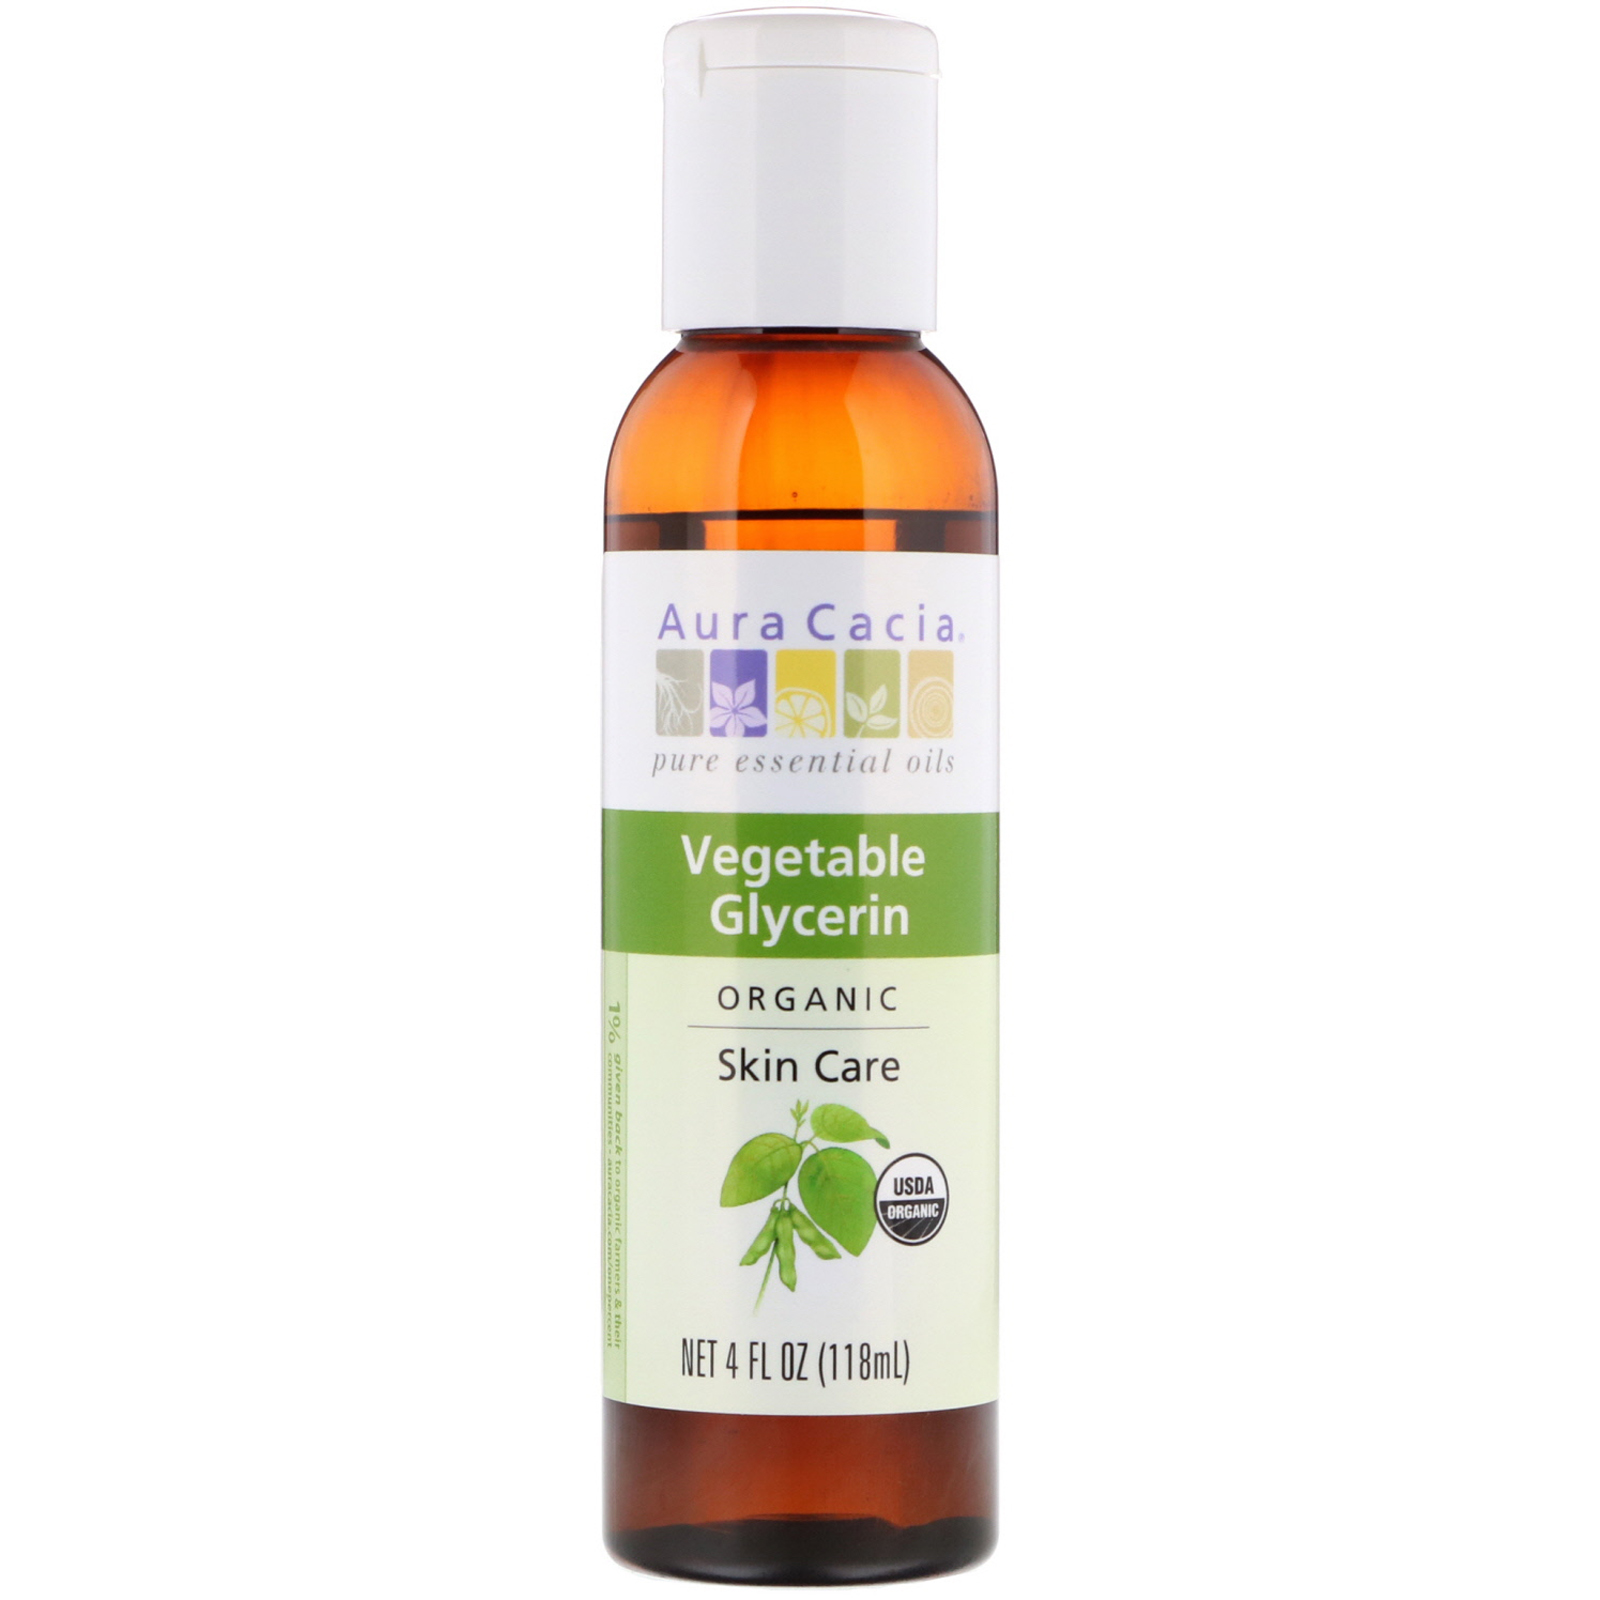 Organic Skin Care Oil Vegetable Glycerin 4 Oz Bath & Body